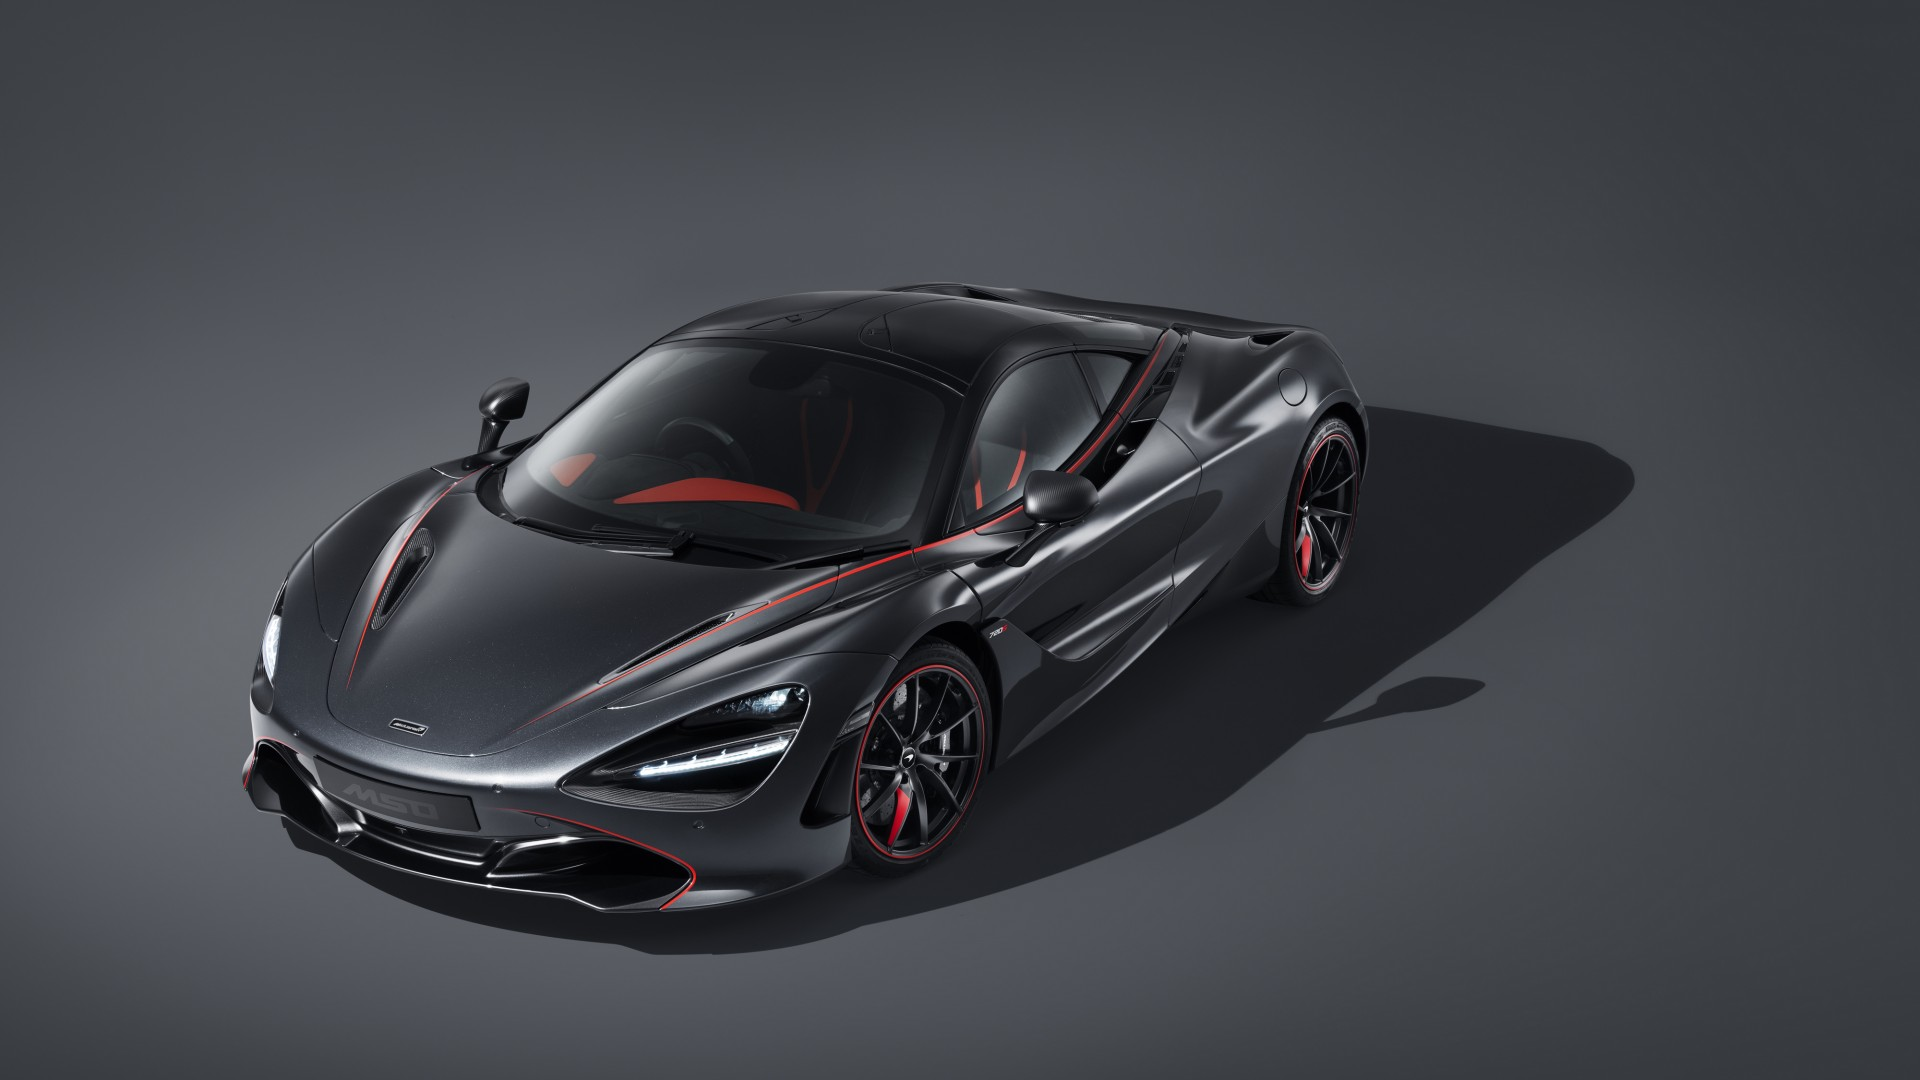 McLaren MSO 720S Stealth Theme 2018 4K Wallpaper | HD Car ...